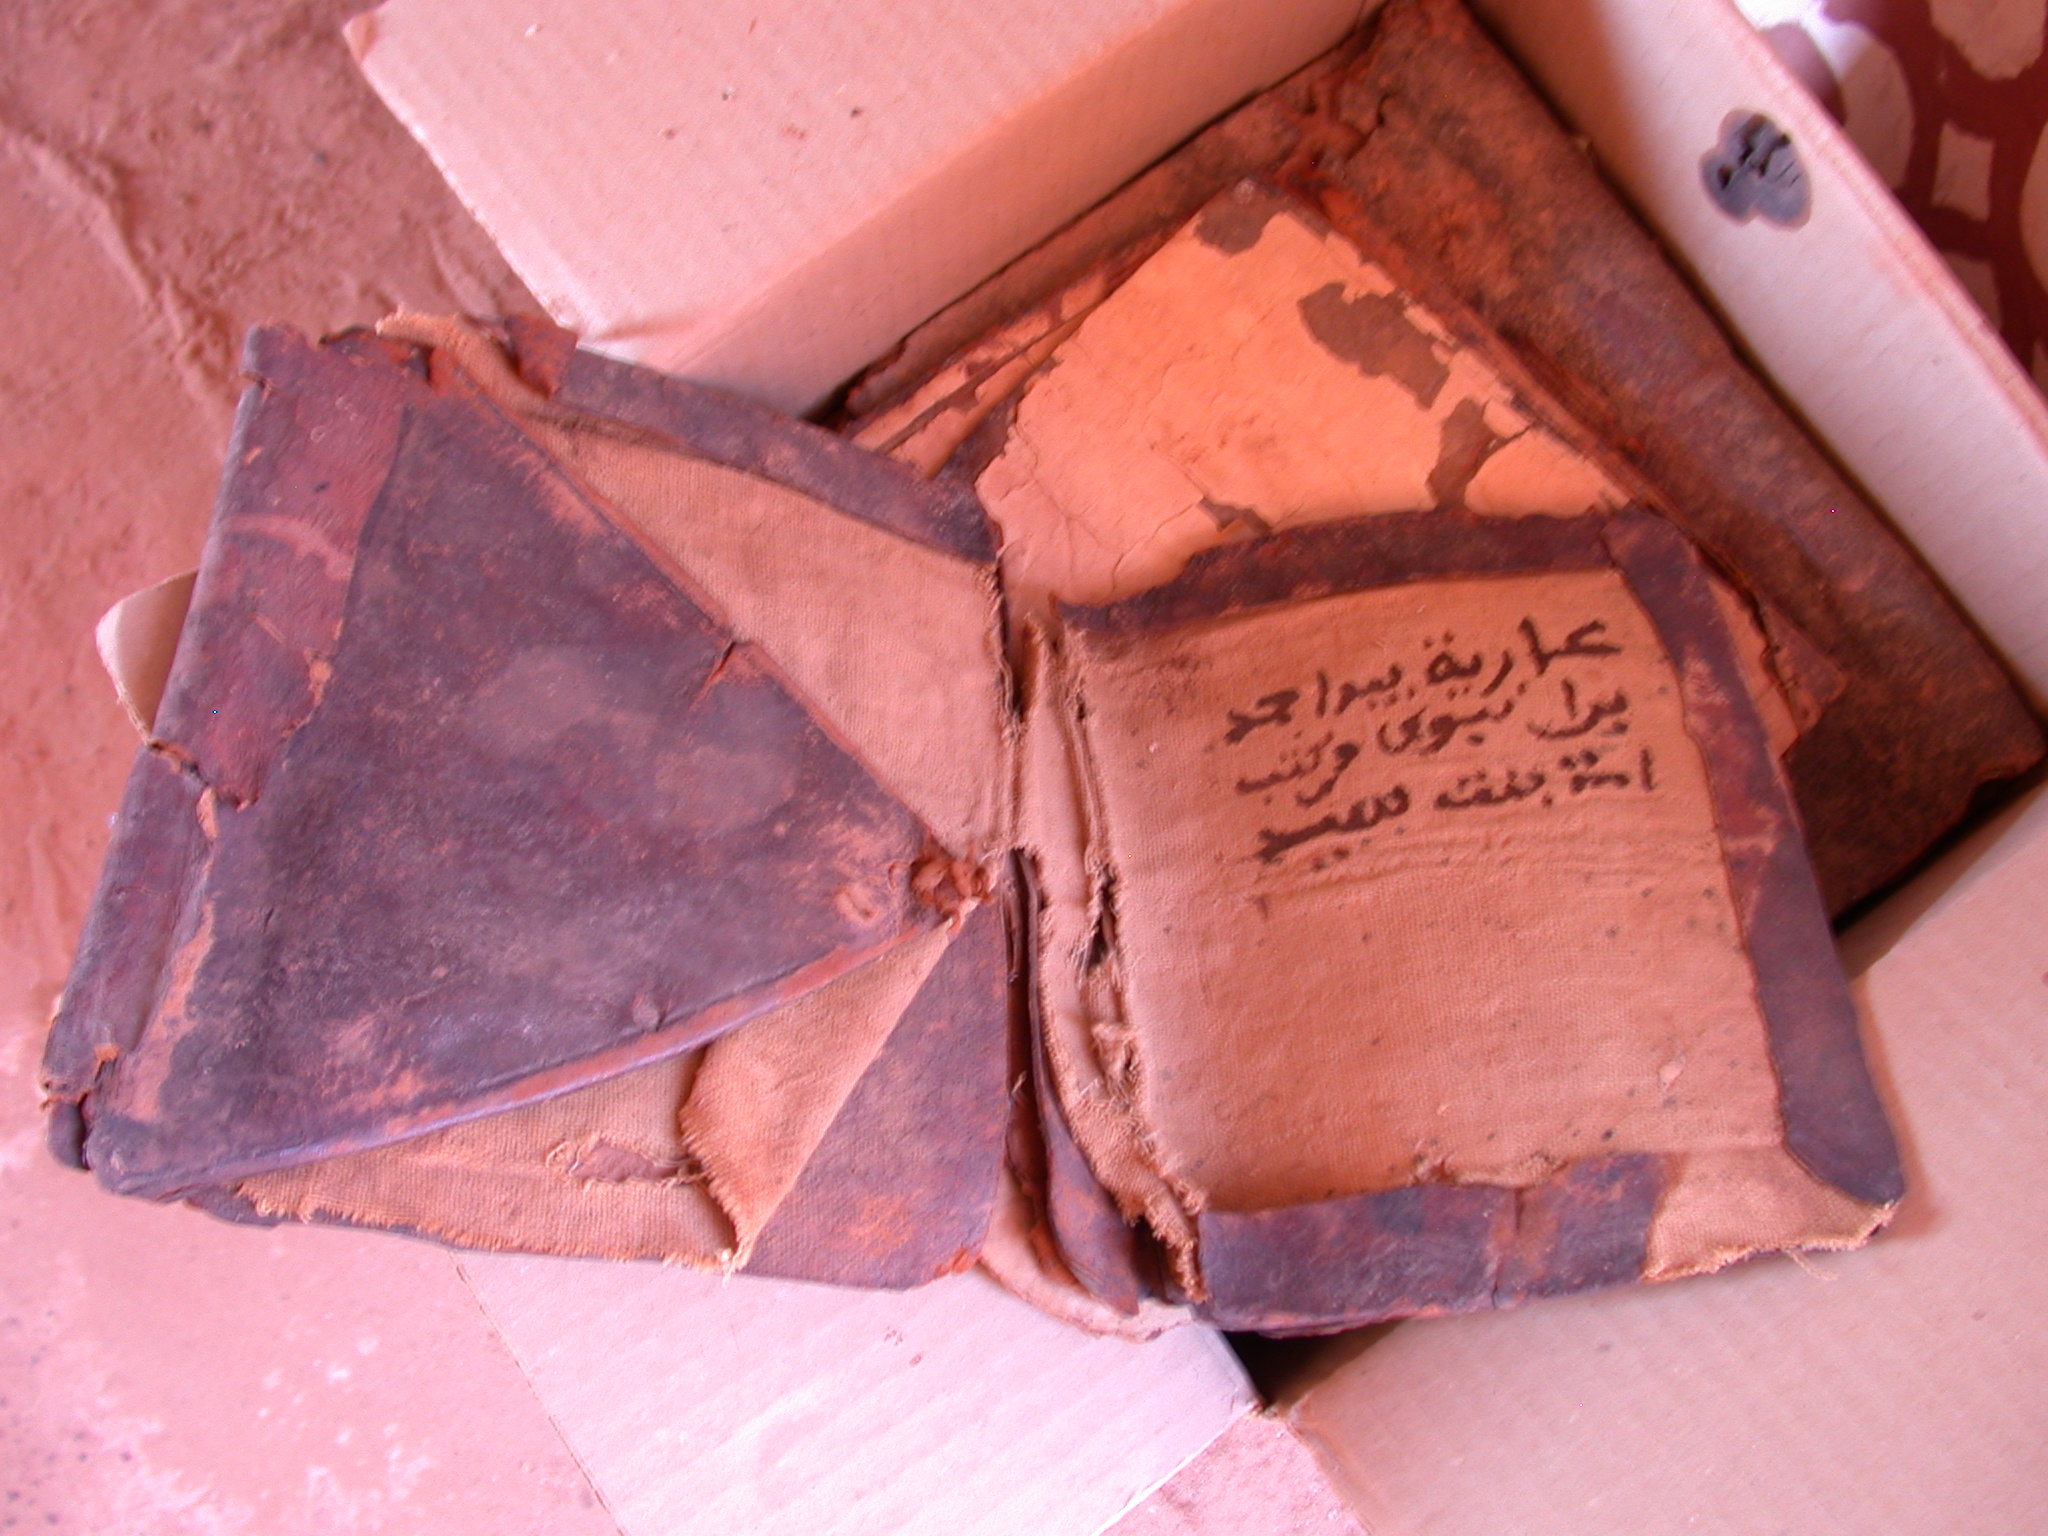 Book at Library in Ancient City of Oulata, Mauritania